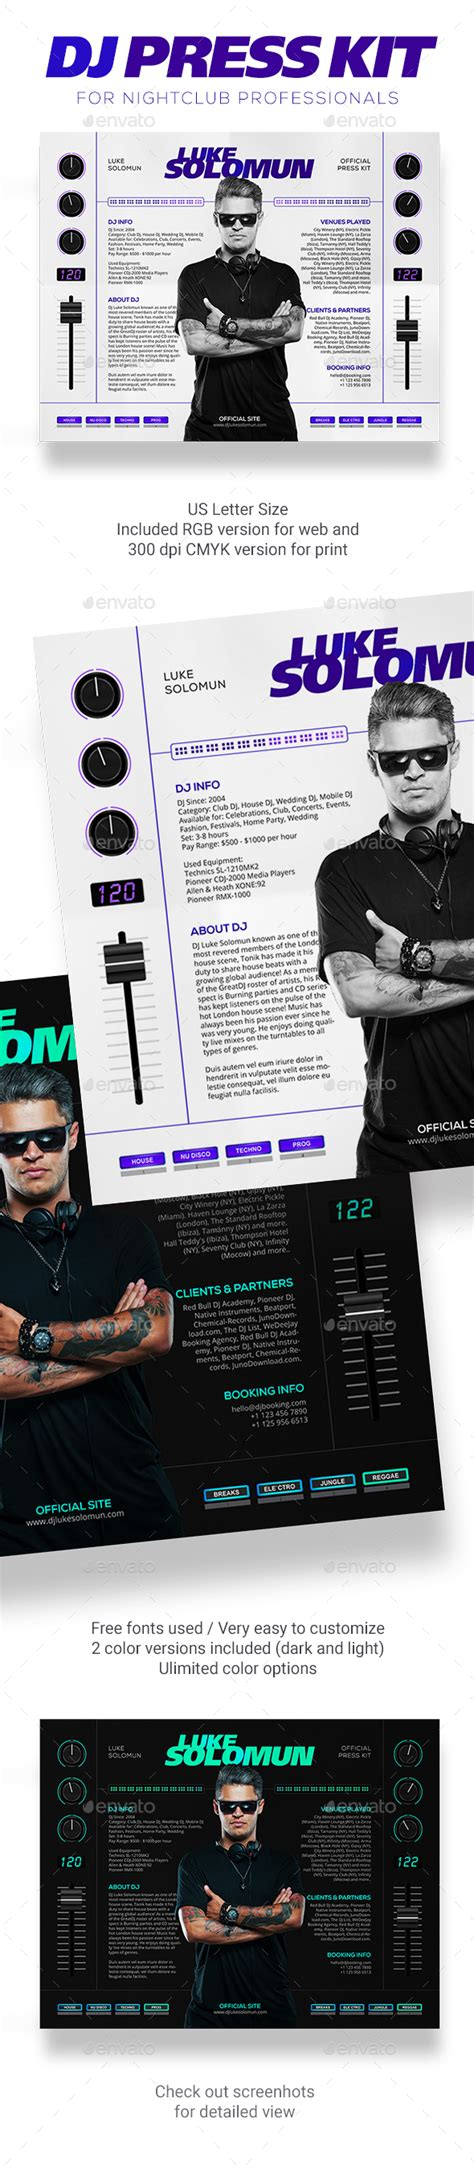 dj rider template madjestik dj press kit dj resume dj rider psd